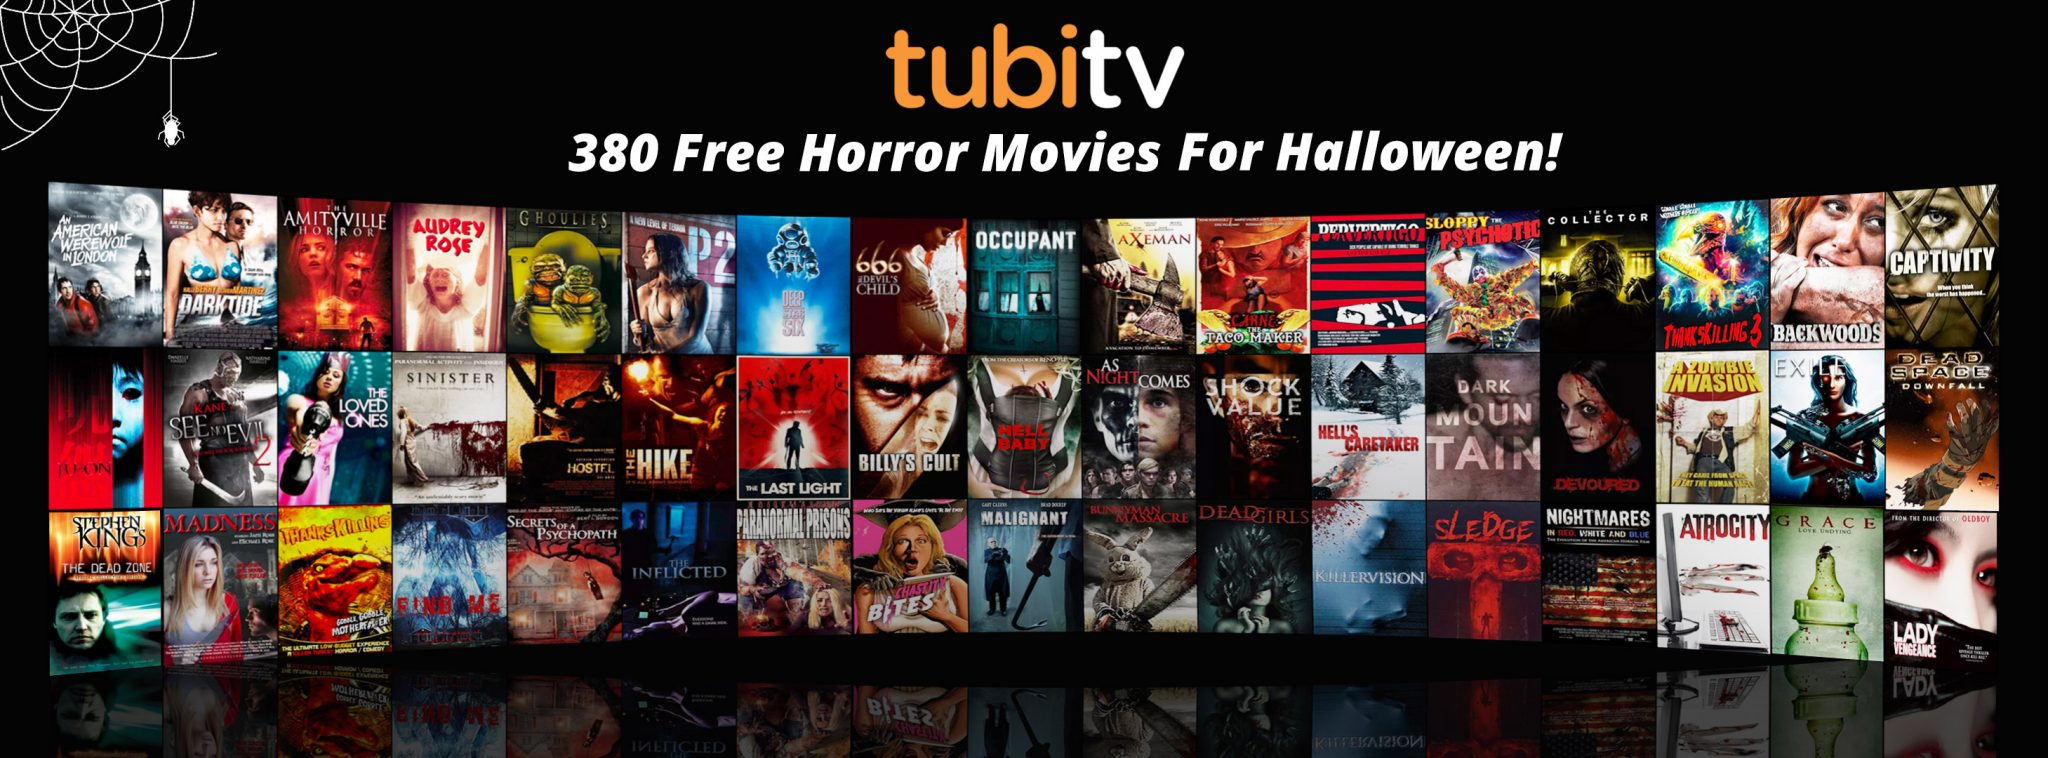 Niter watch movies online for free hd